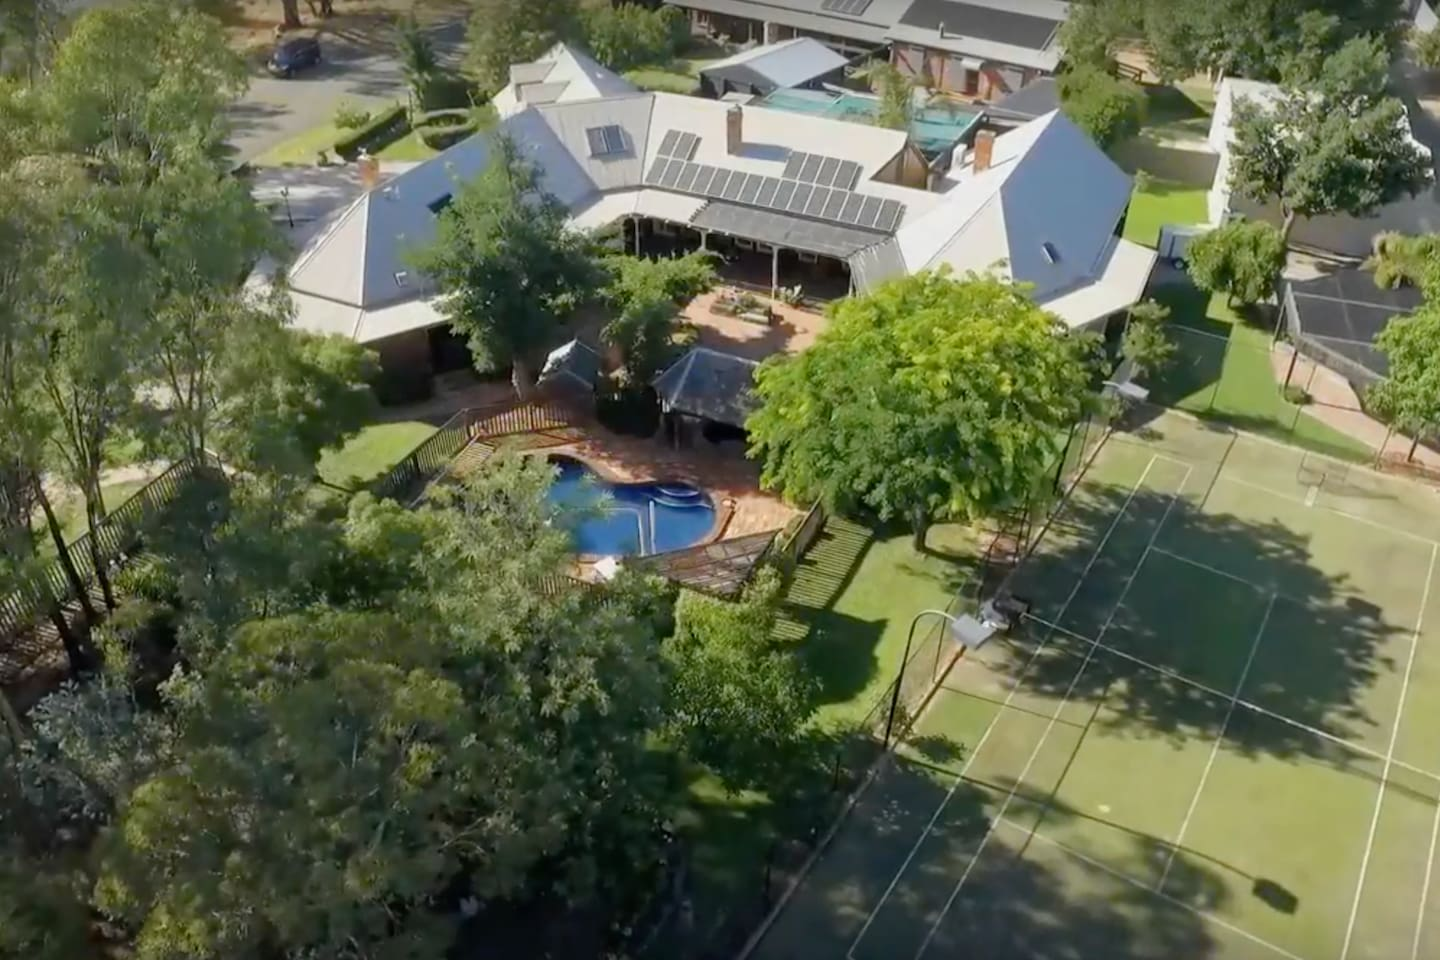 Private guest house, tennis court, BBQ, pizza oven. Friendly host.